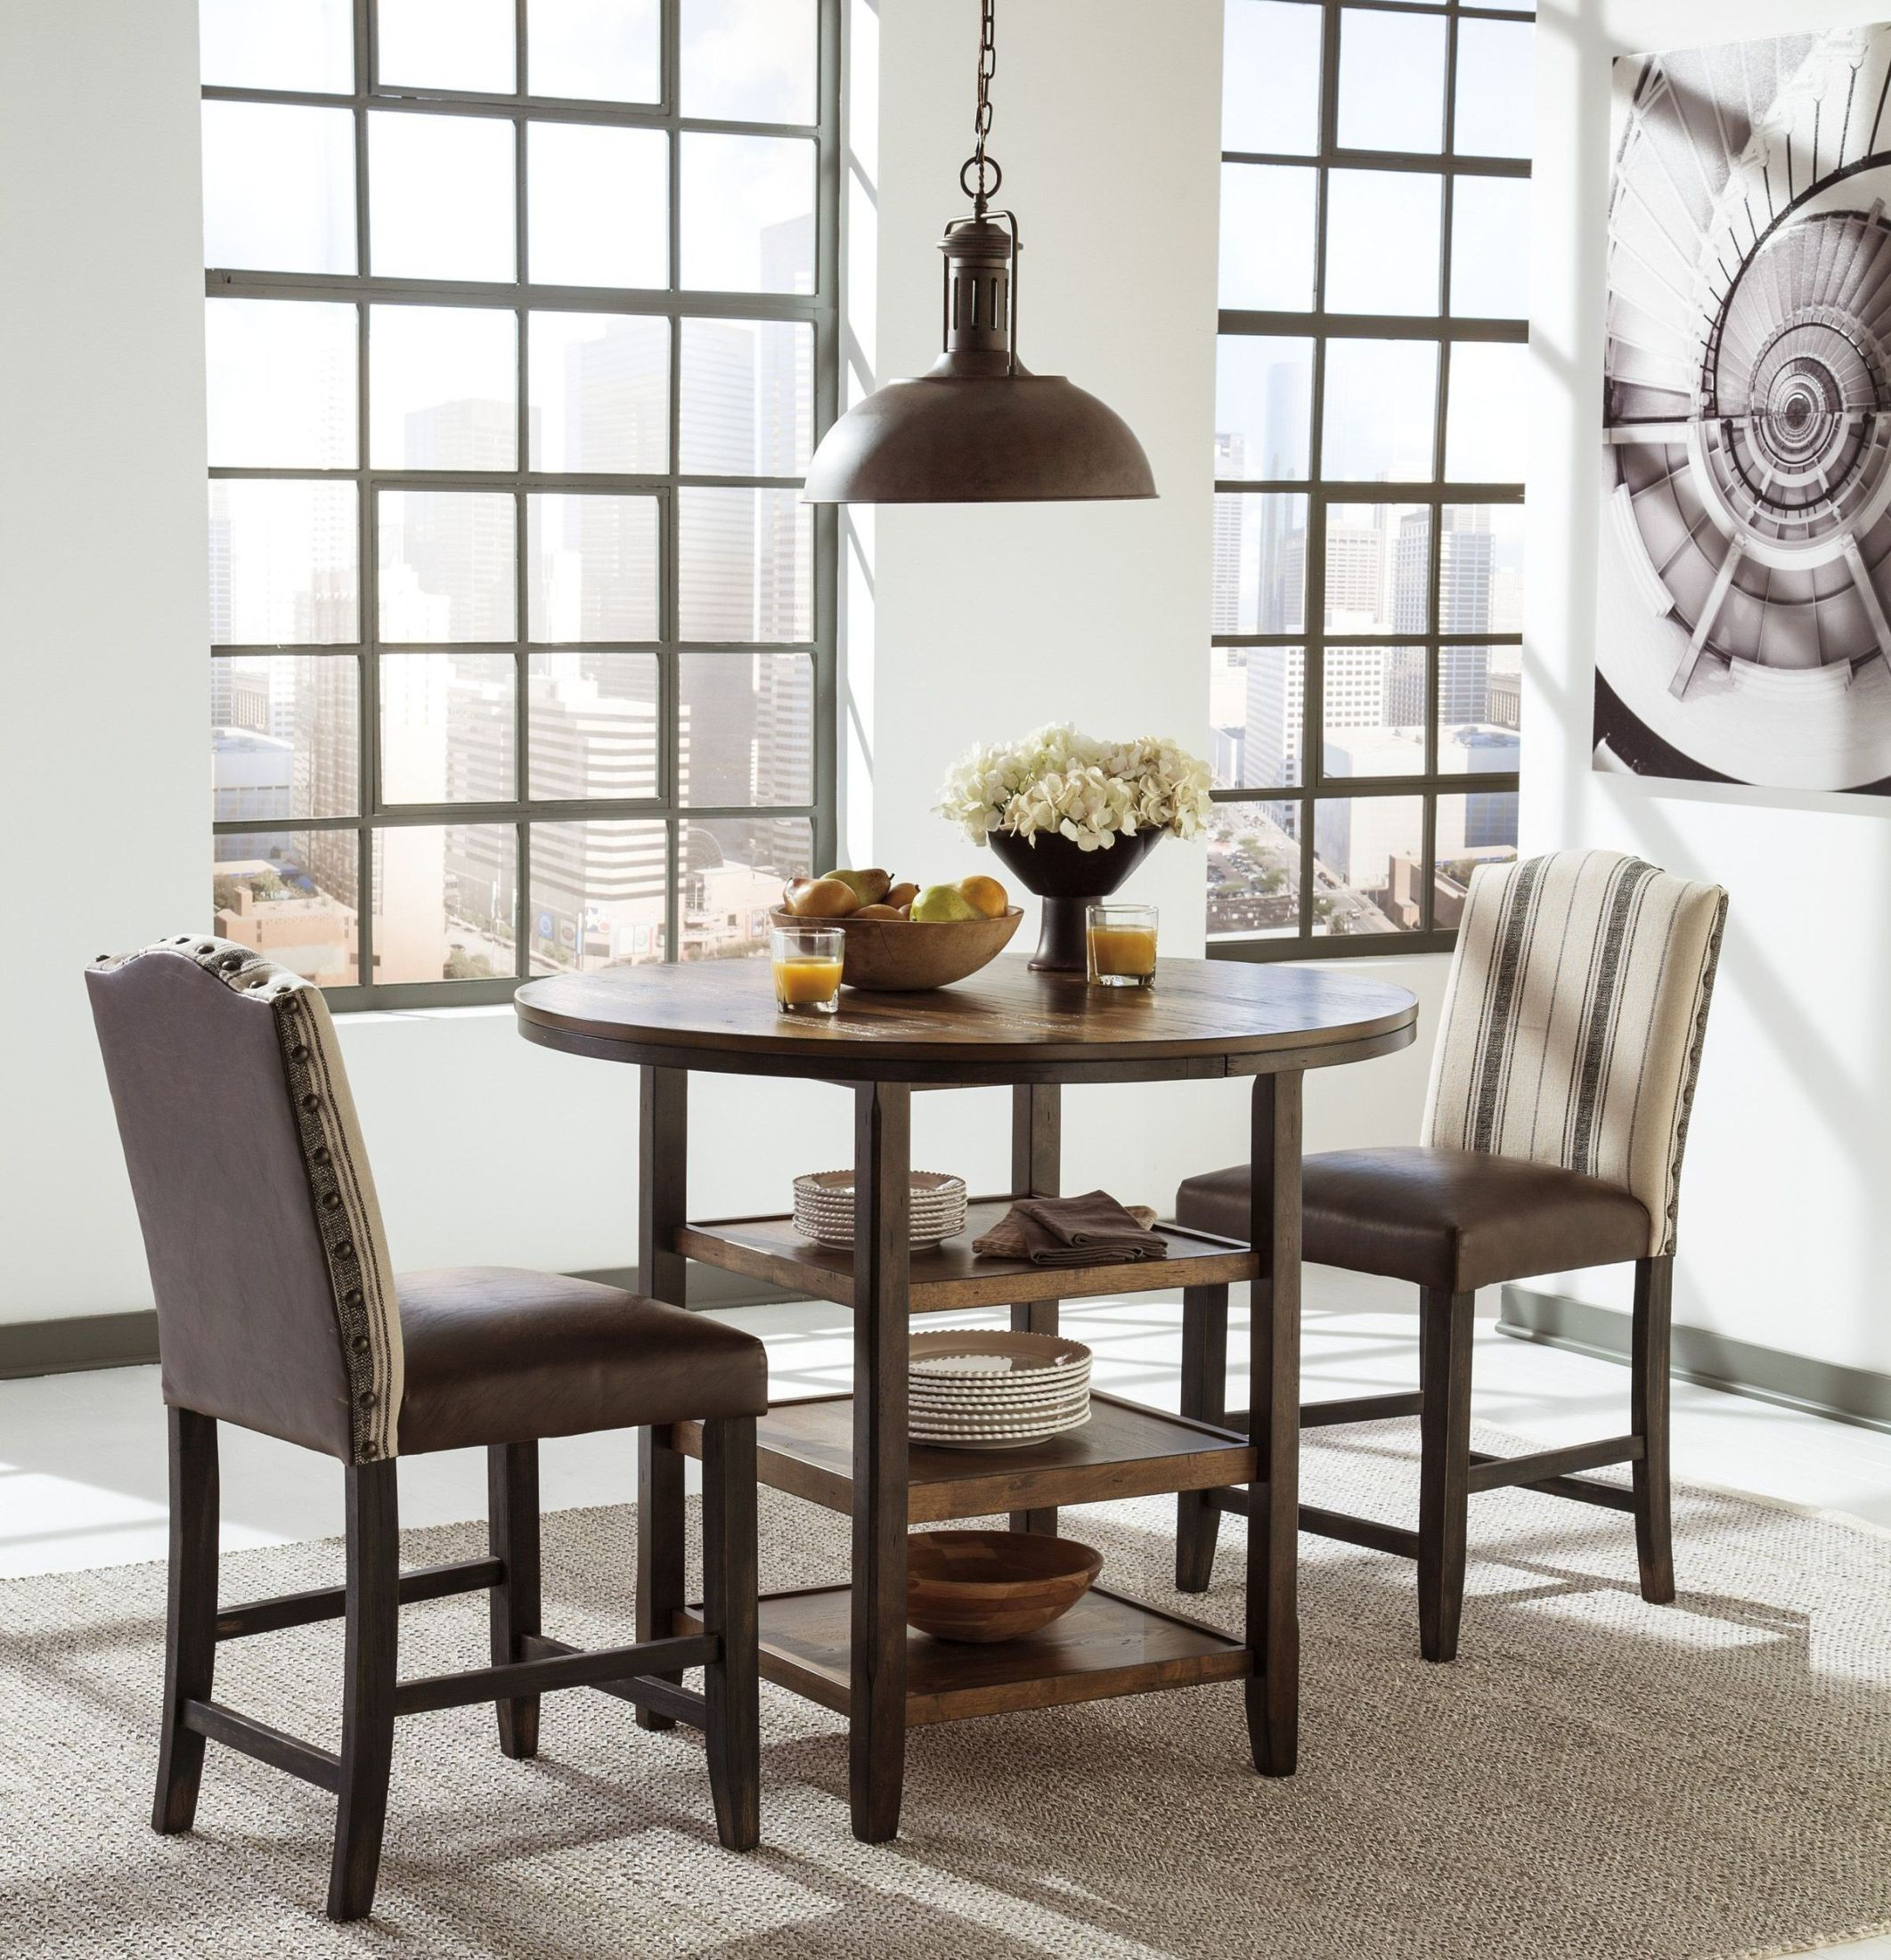 Counter Dining Room Sets: Moriann Round Counter Dining Room Set From Ashley (D608-13